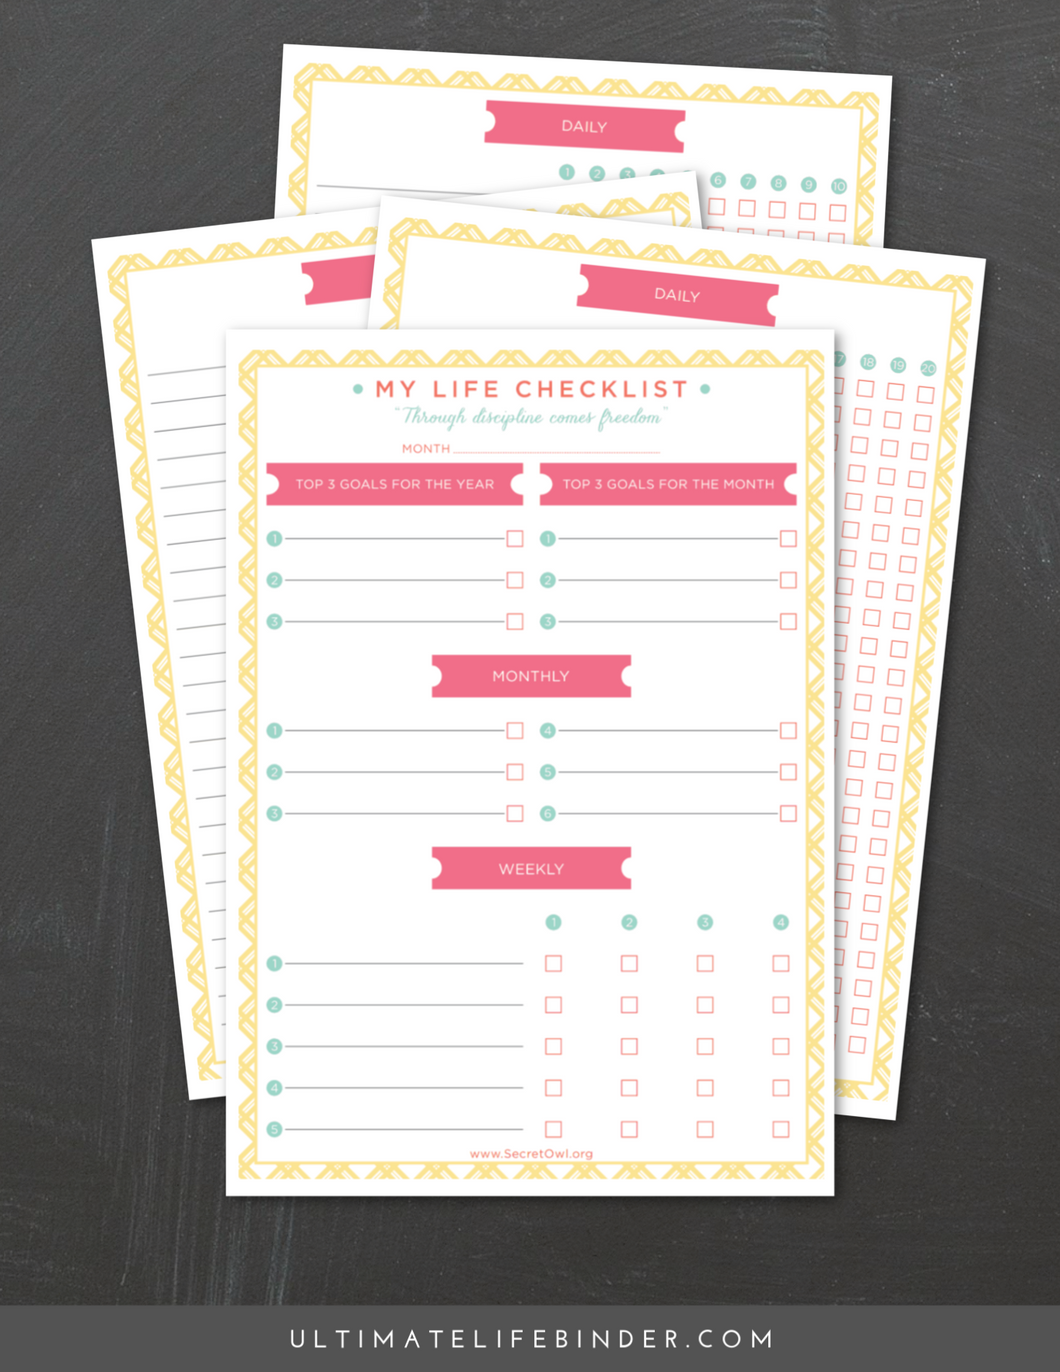 This nifty printable set breaks down your goals for the year into monthly, weekly, and daily objectives.